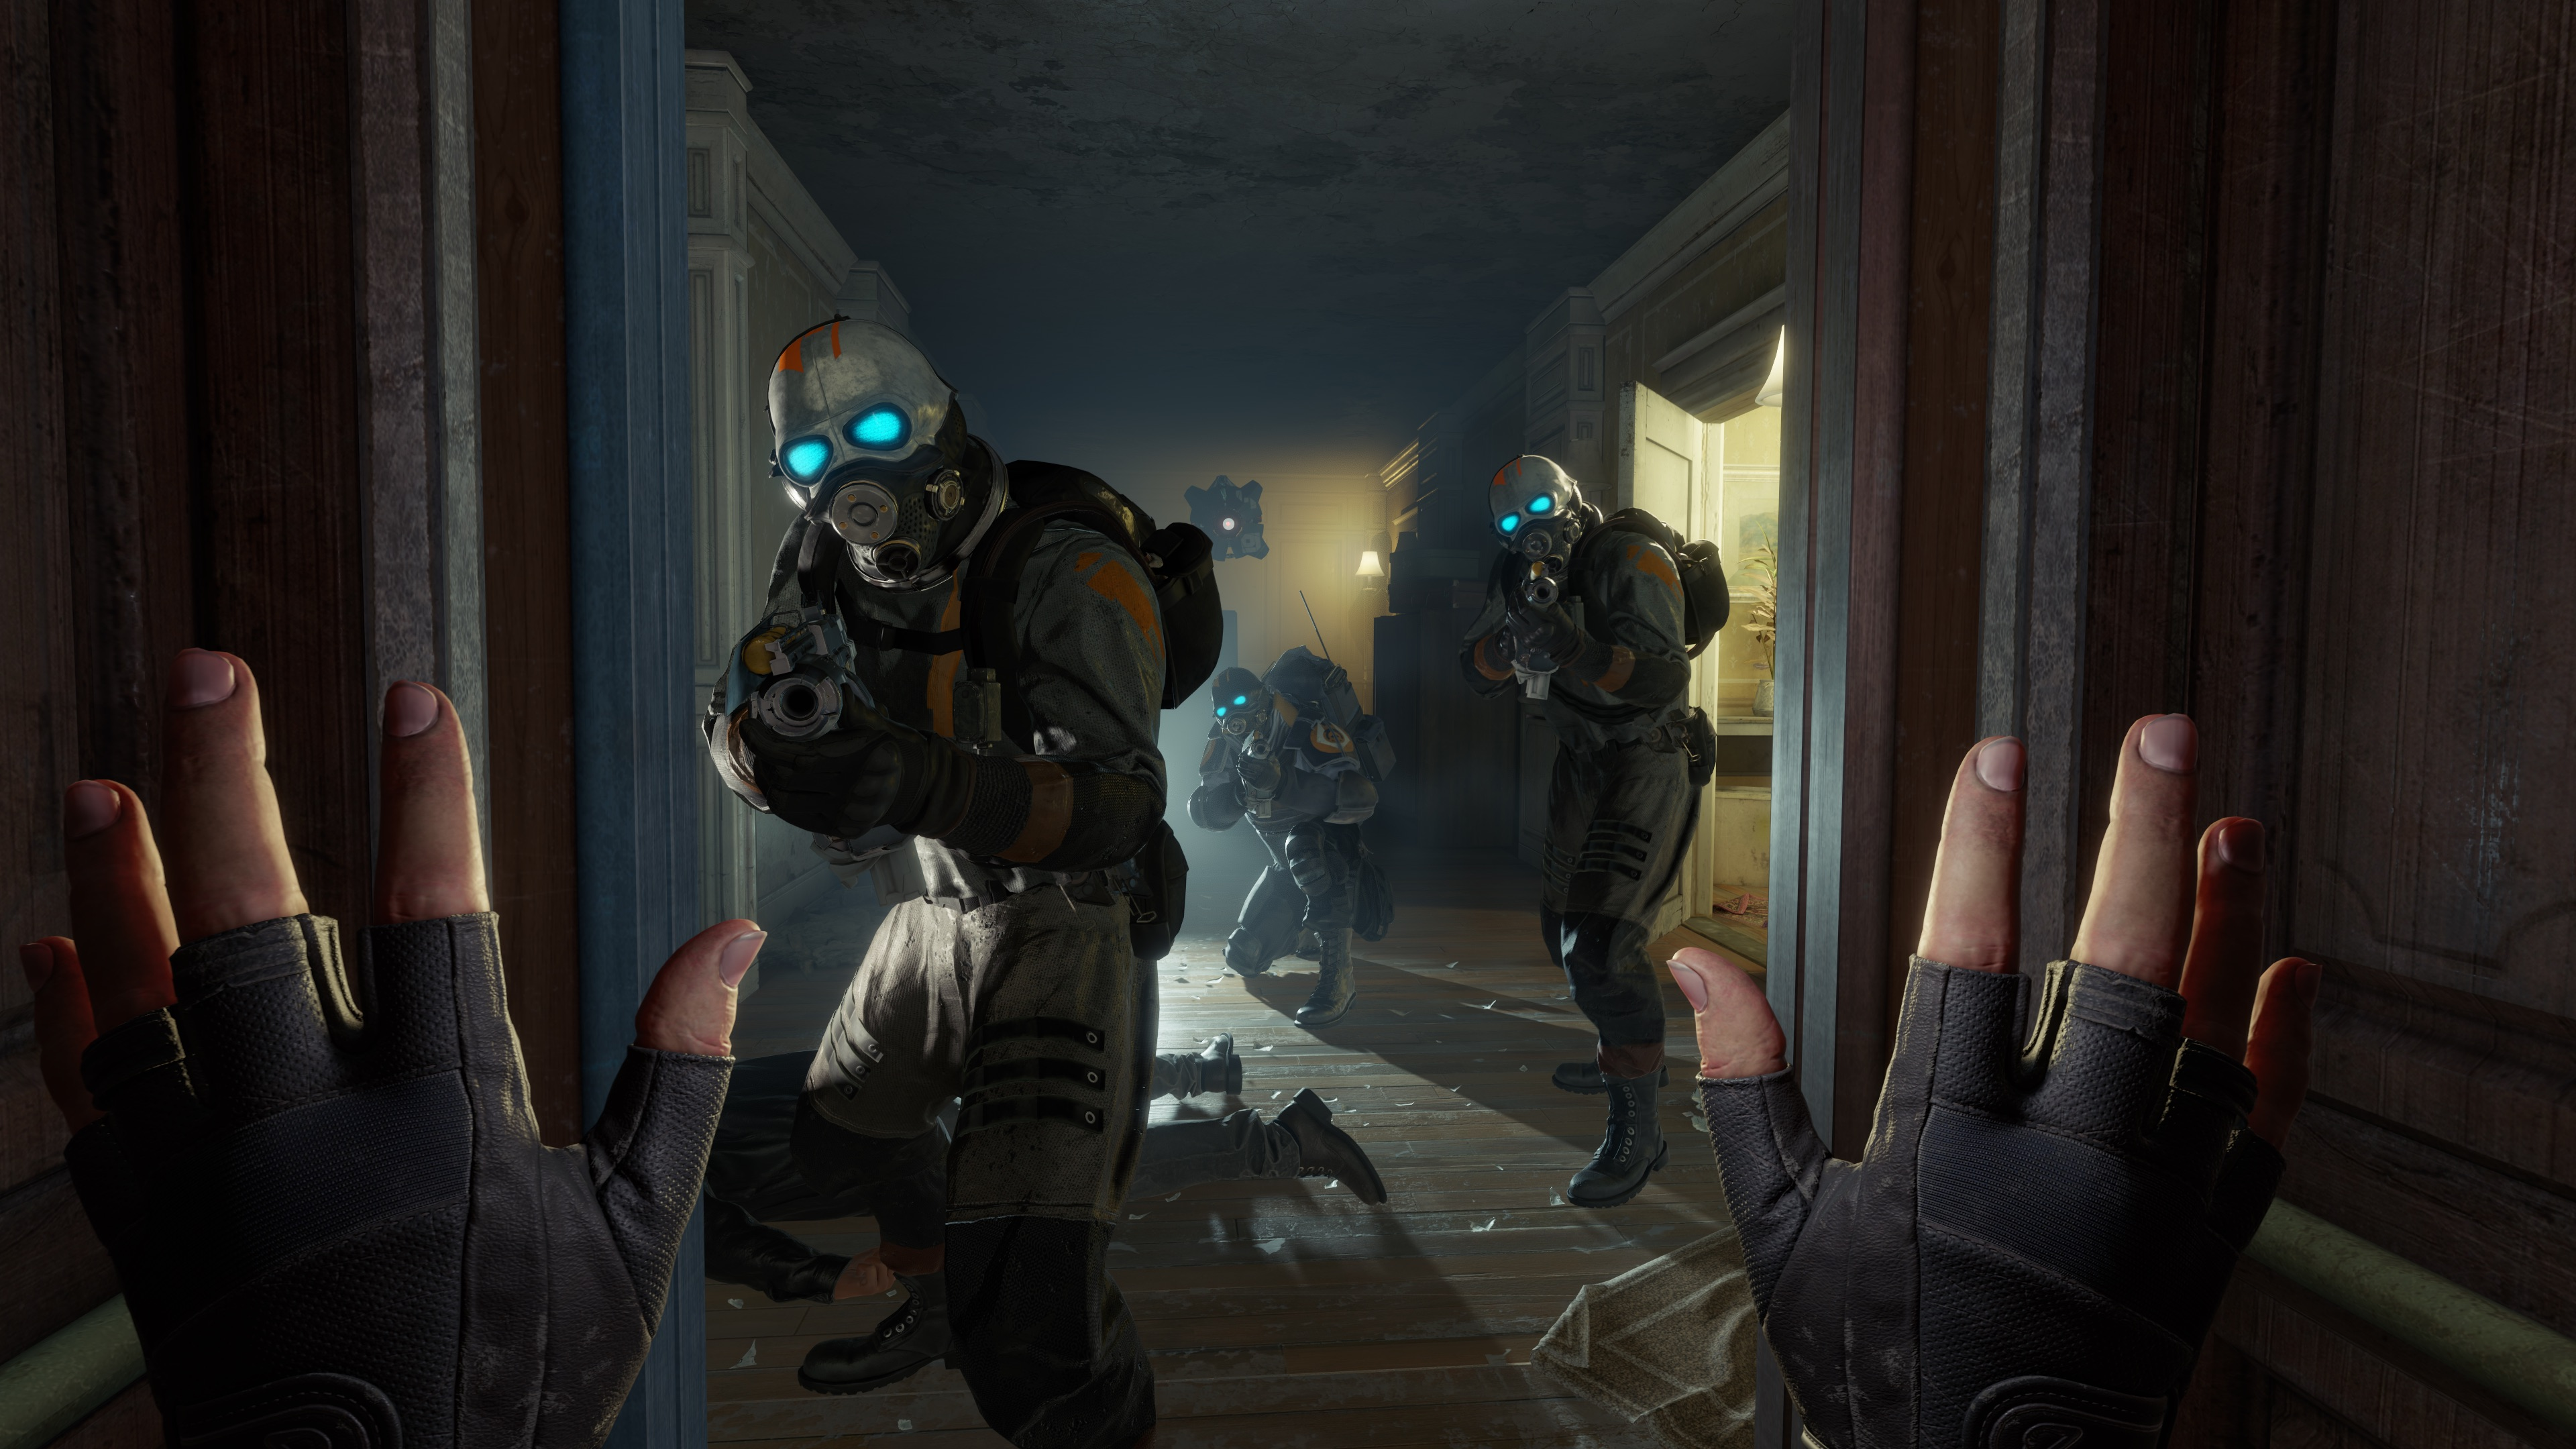 Combine soldiers hold you at gunpoint in Half-Life: Alyx